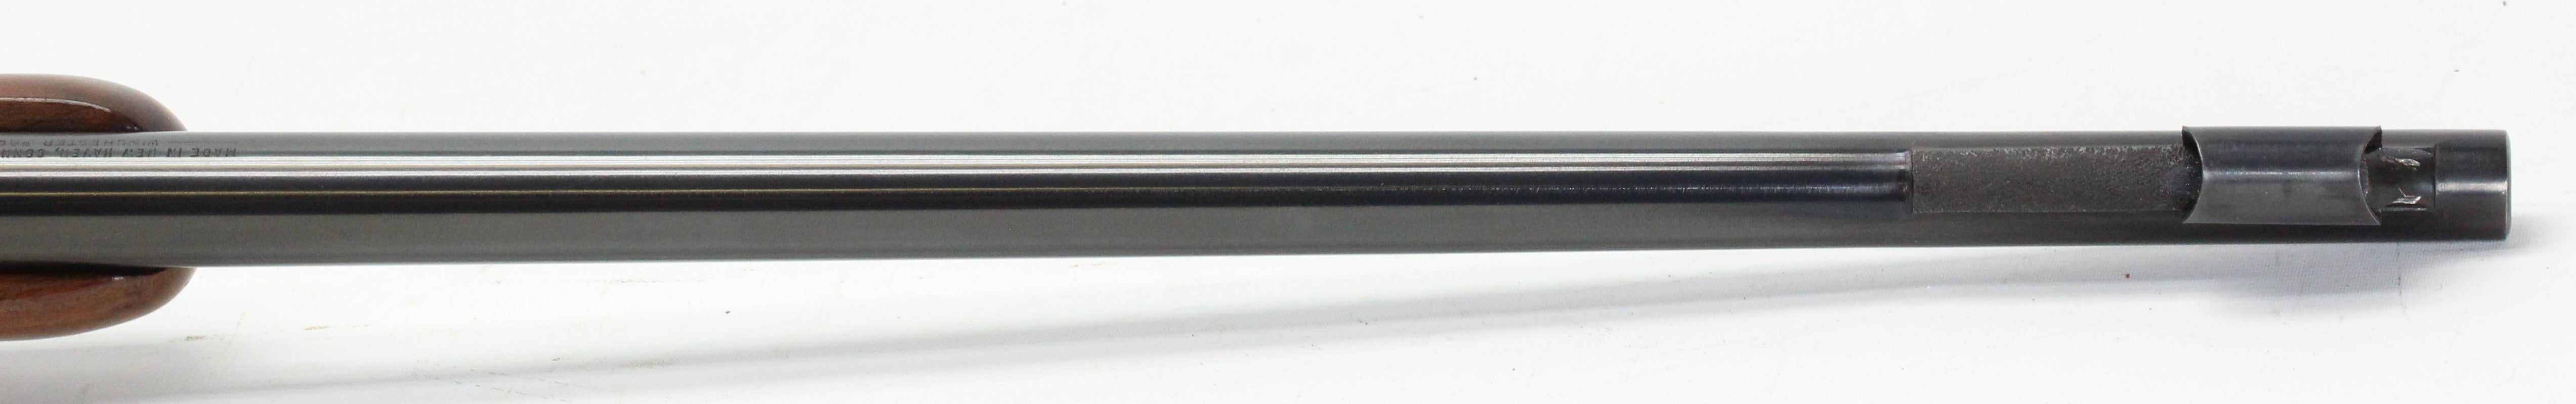 7 M/M (7x57mm Mauser) Standard Rifle - 1954